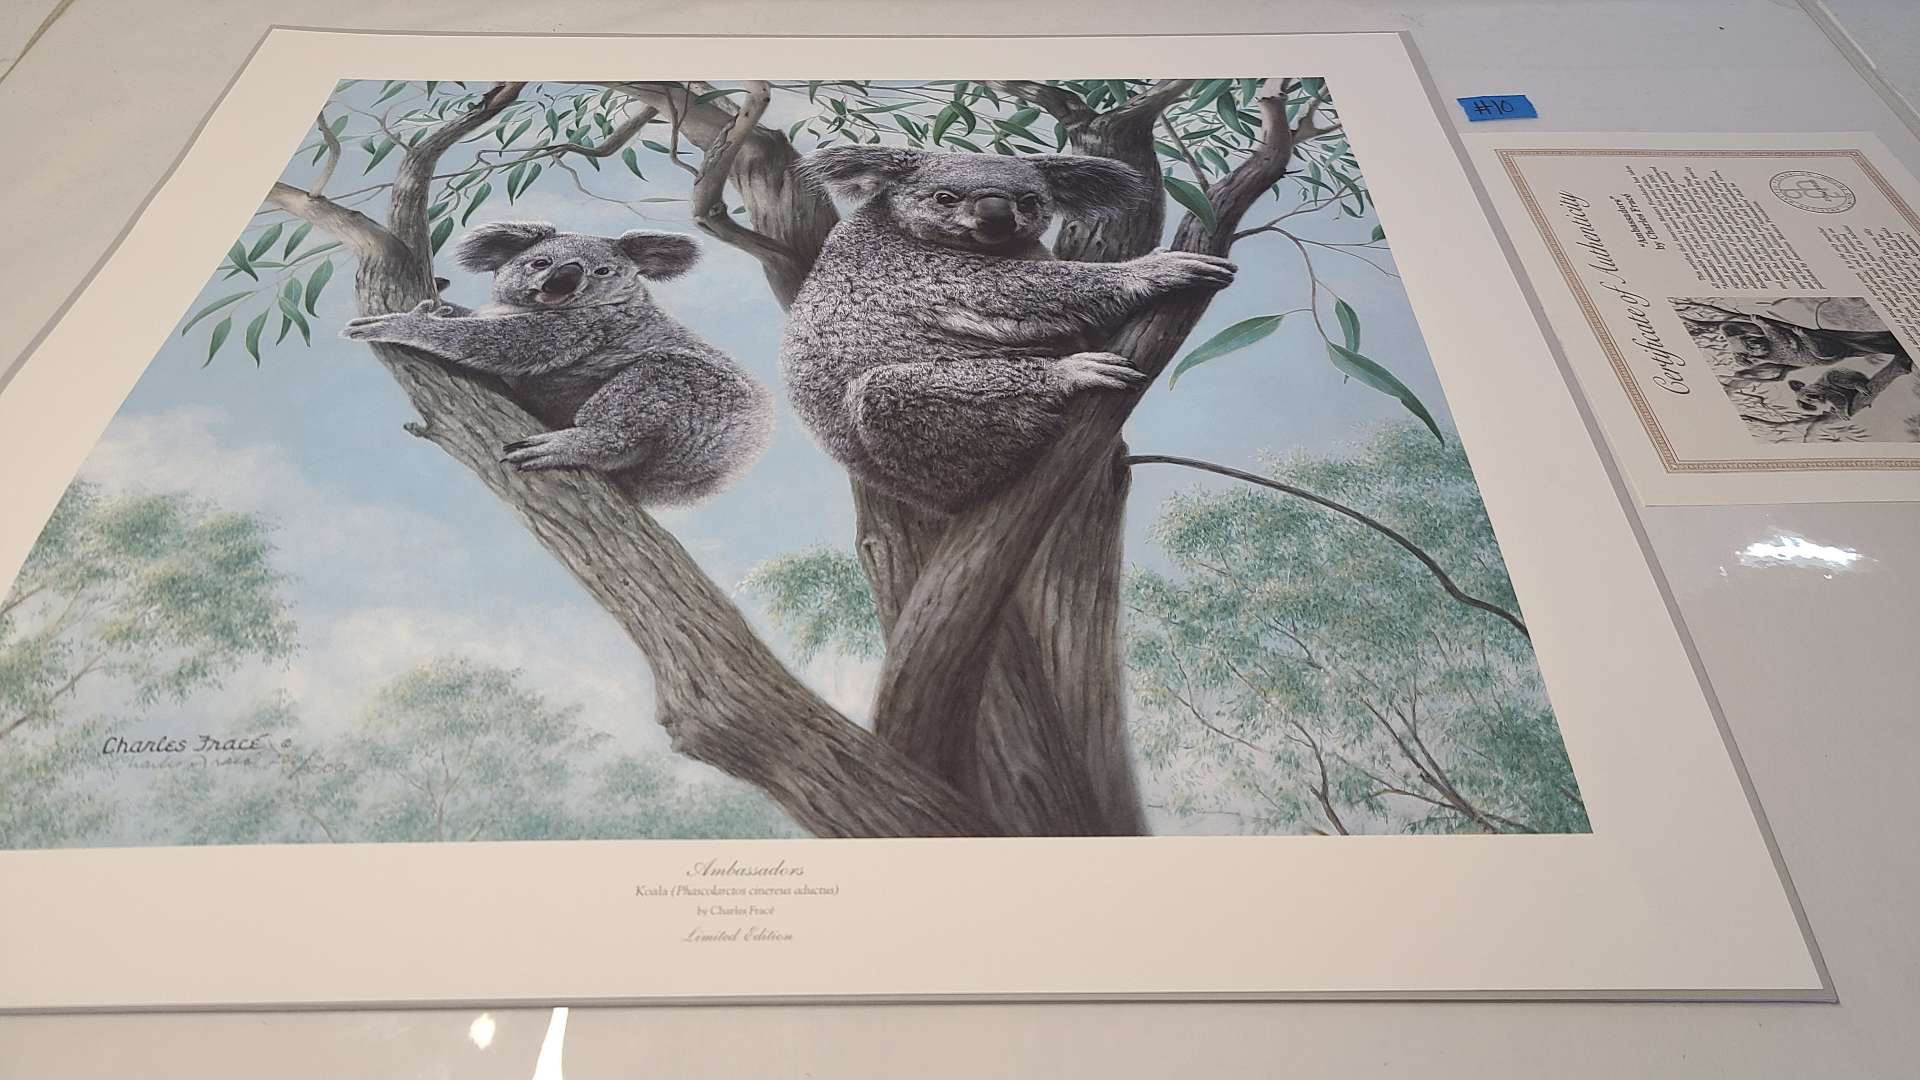 Lot # 10 Lot of 2 Animal Inspired Signed & Numbered Lithographs